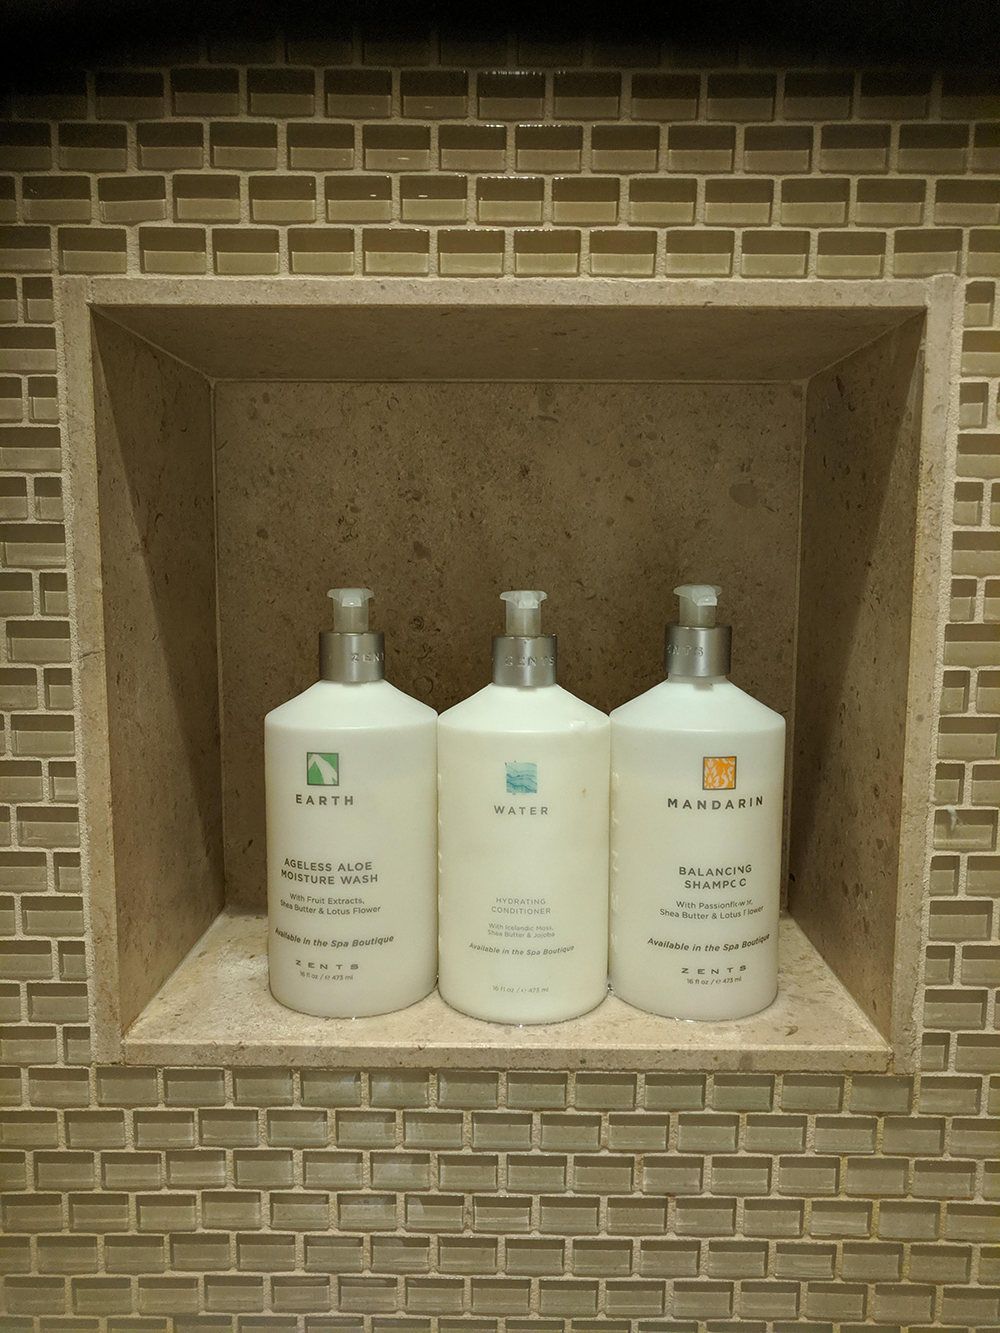 Zents products elevate the aromatic experience throughout the spa.